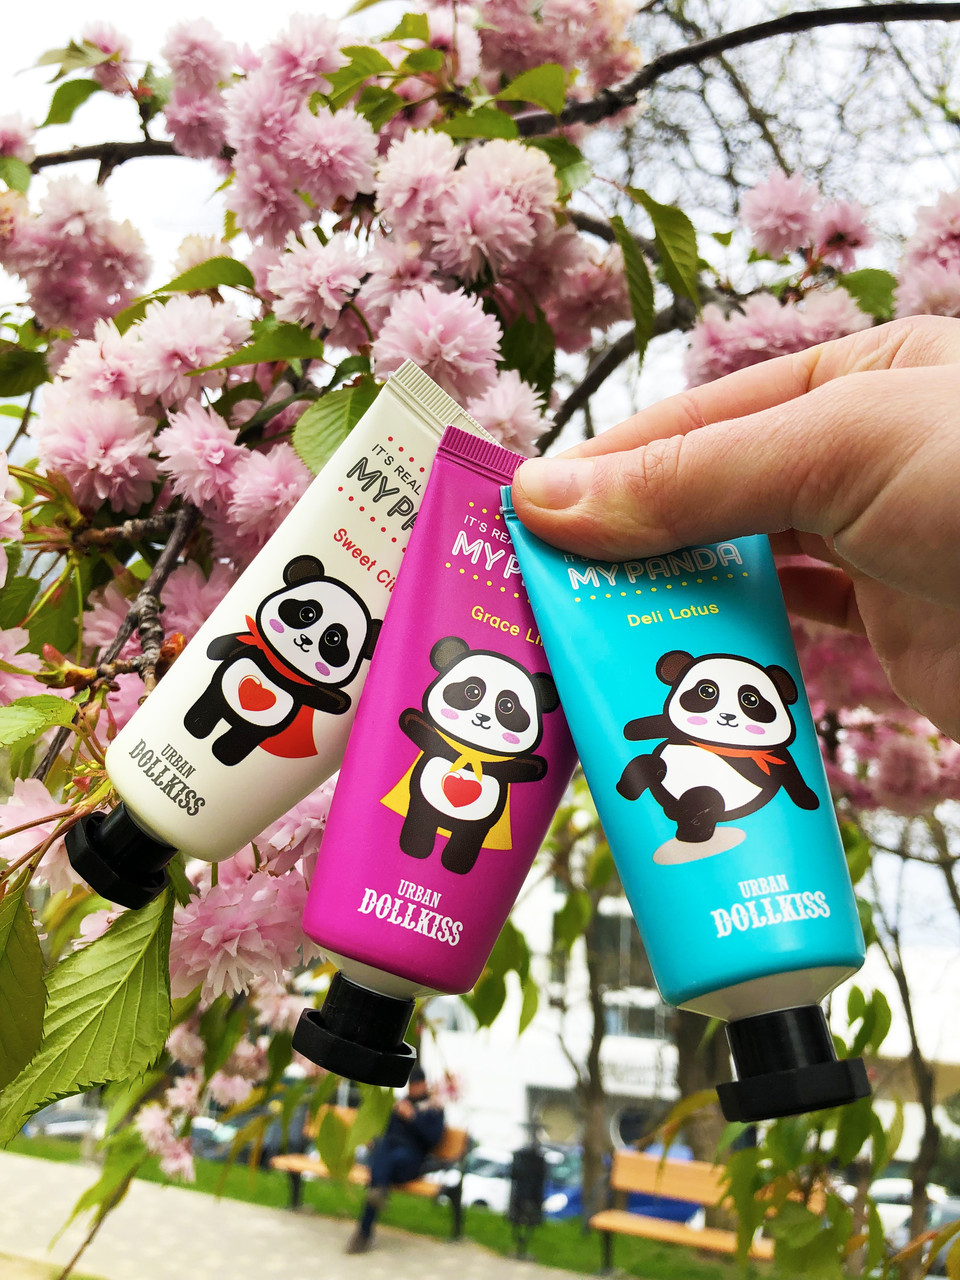 Увлажняющий Крем для рук 12 мл Urban Dollkiss It's Real My Panda Hand Cream (Grace Lily)